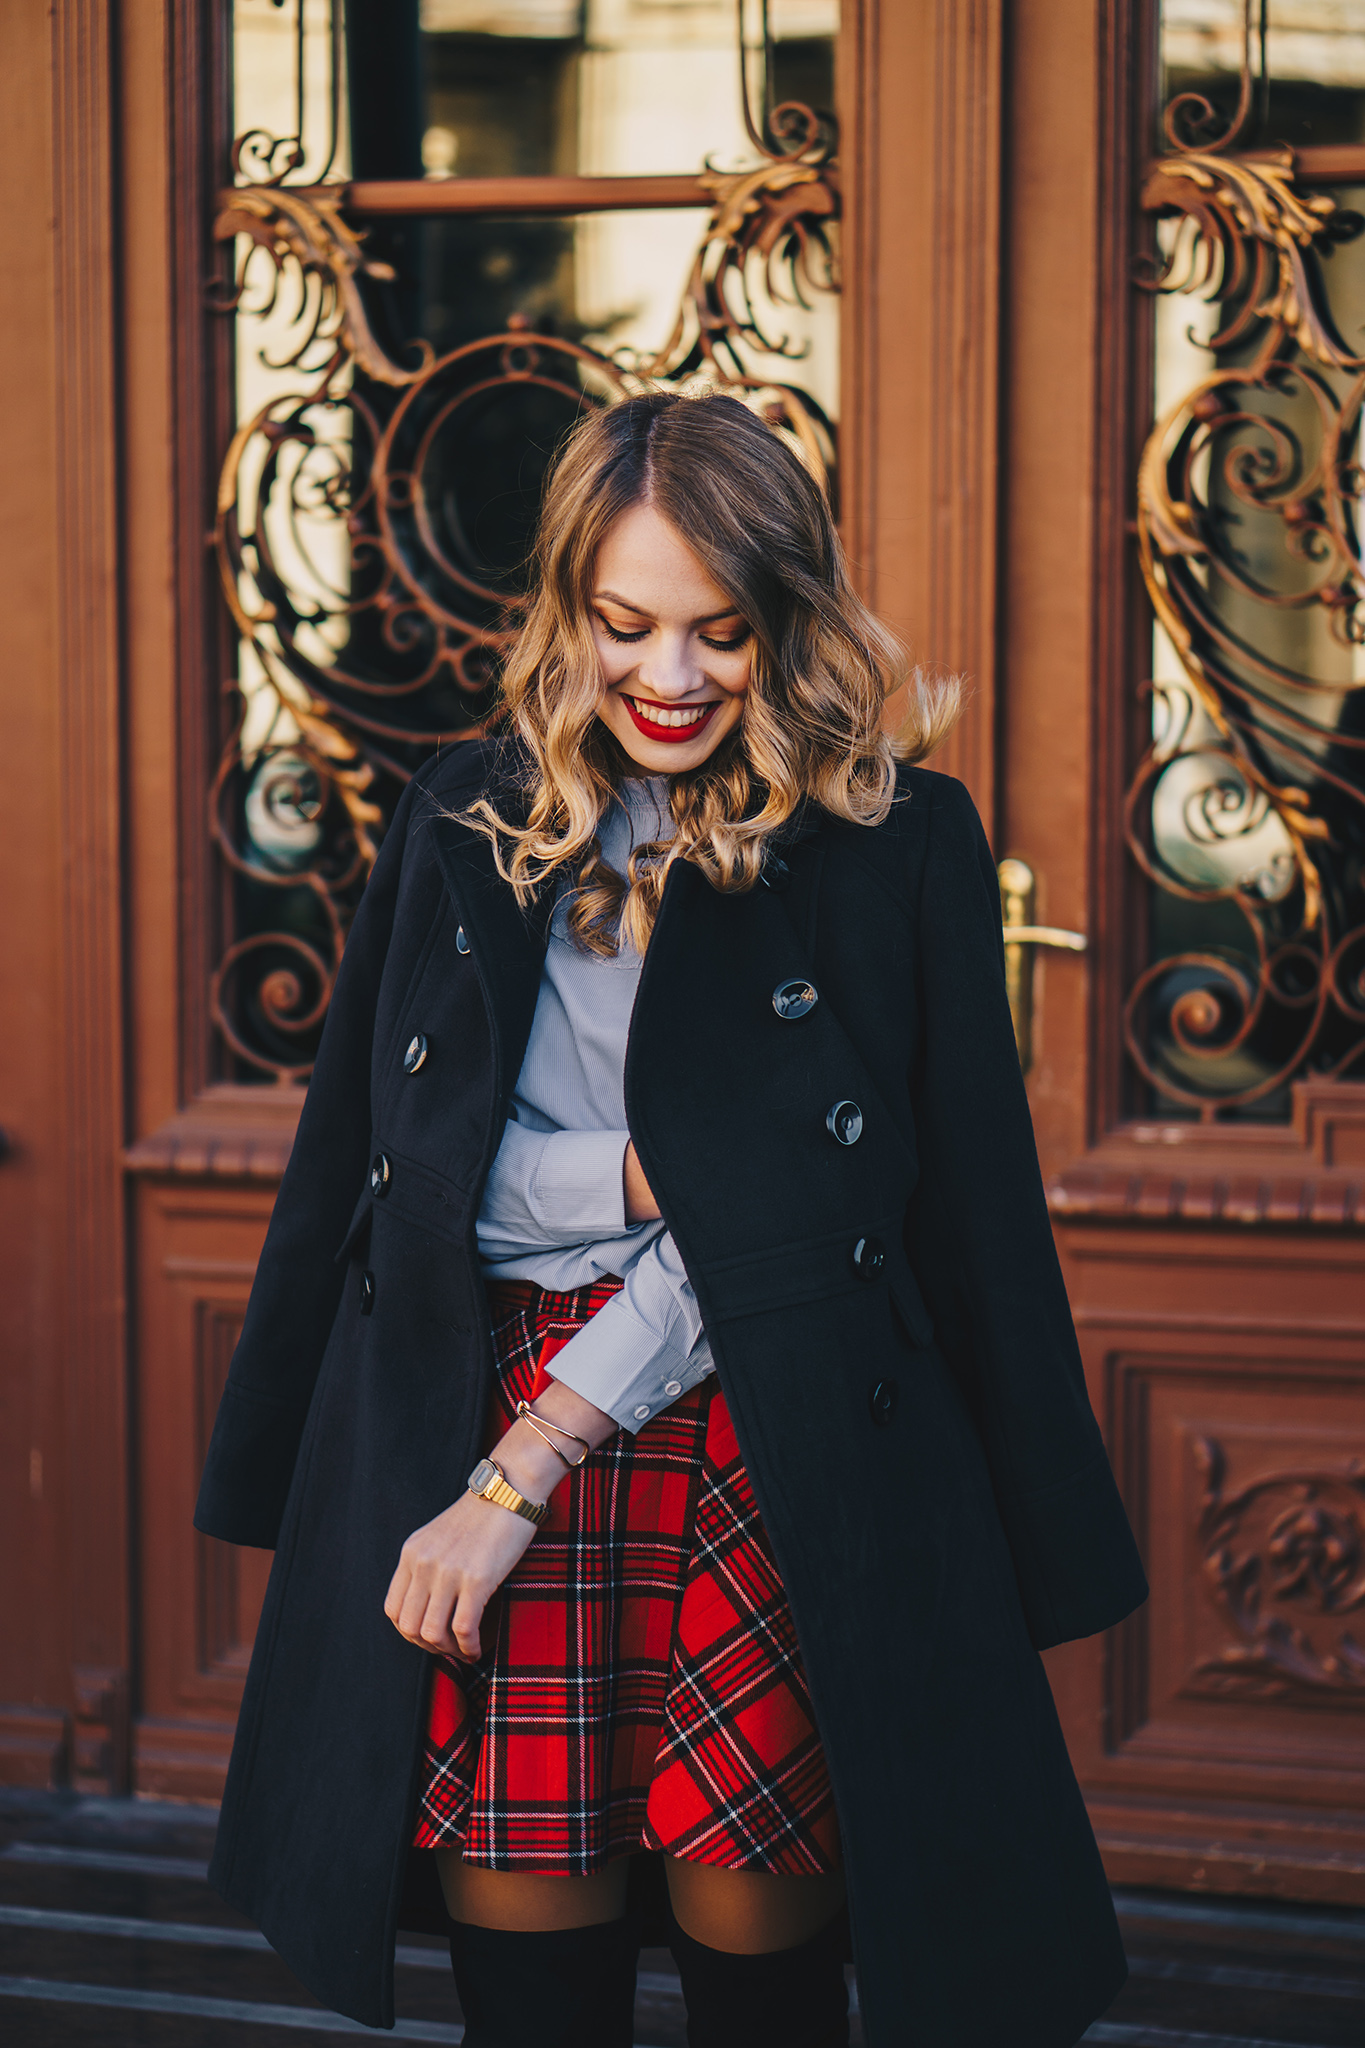 black-coat-red-plaid-skirt-over-the-knee-boots-winter-outfit-4